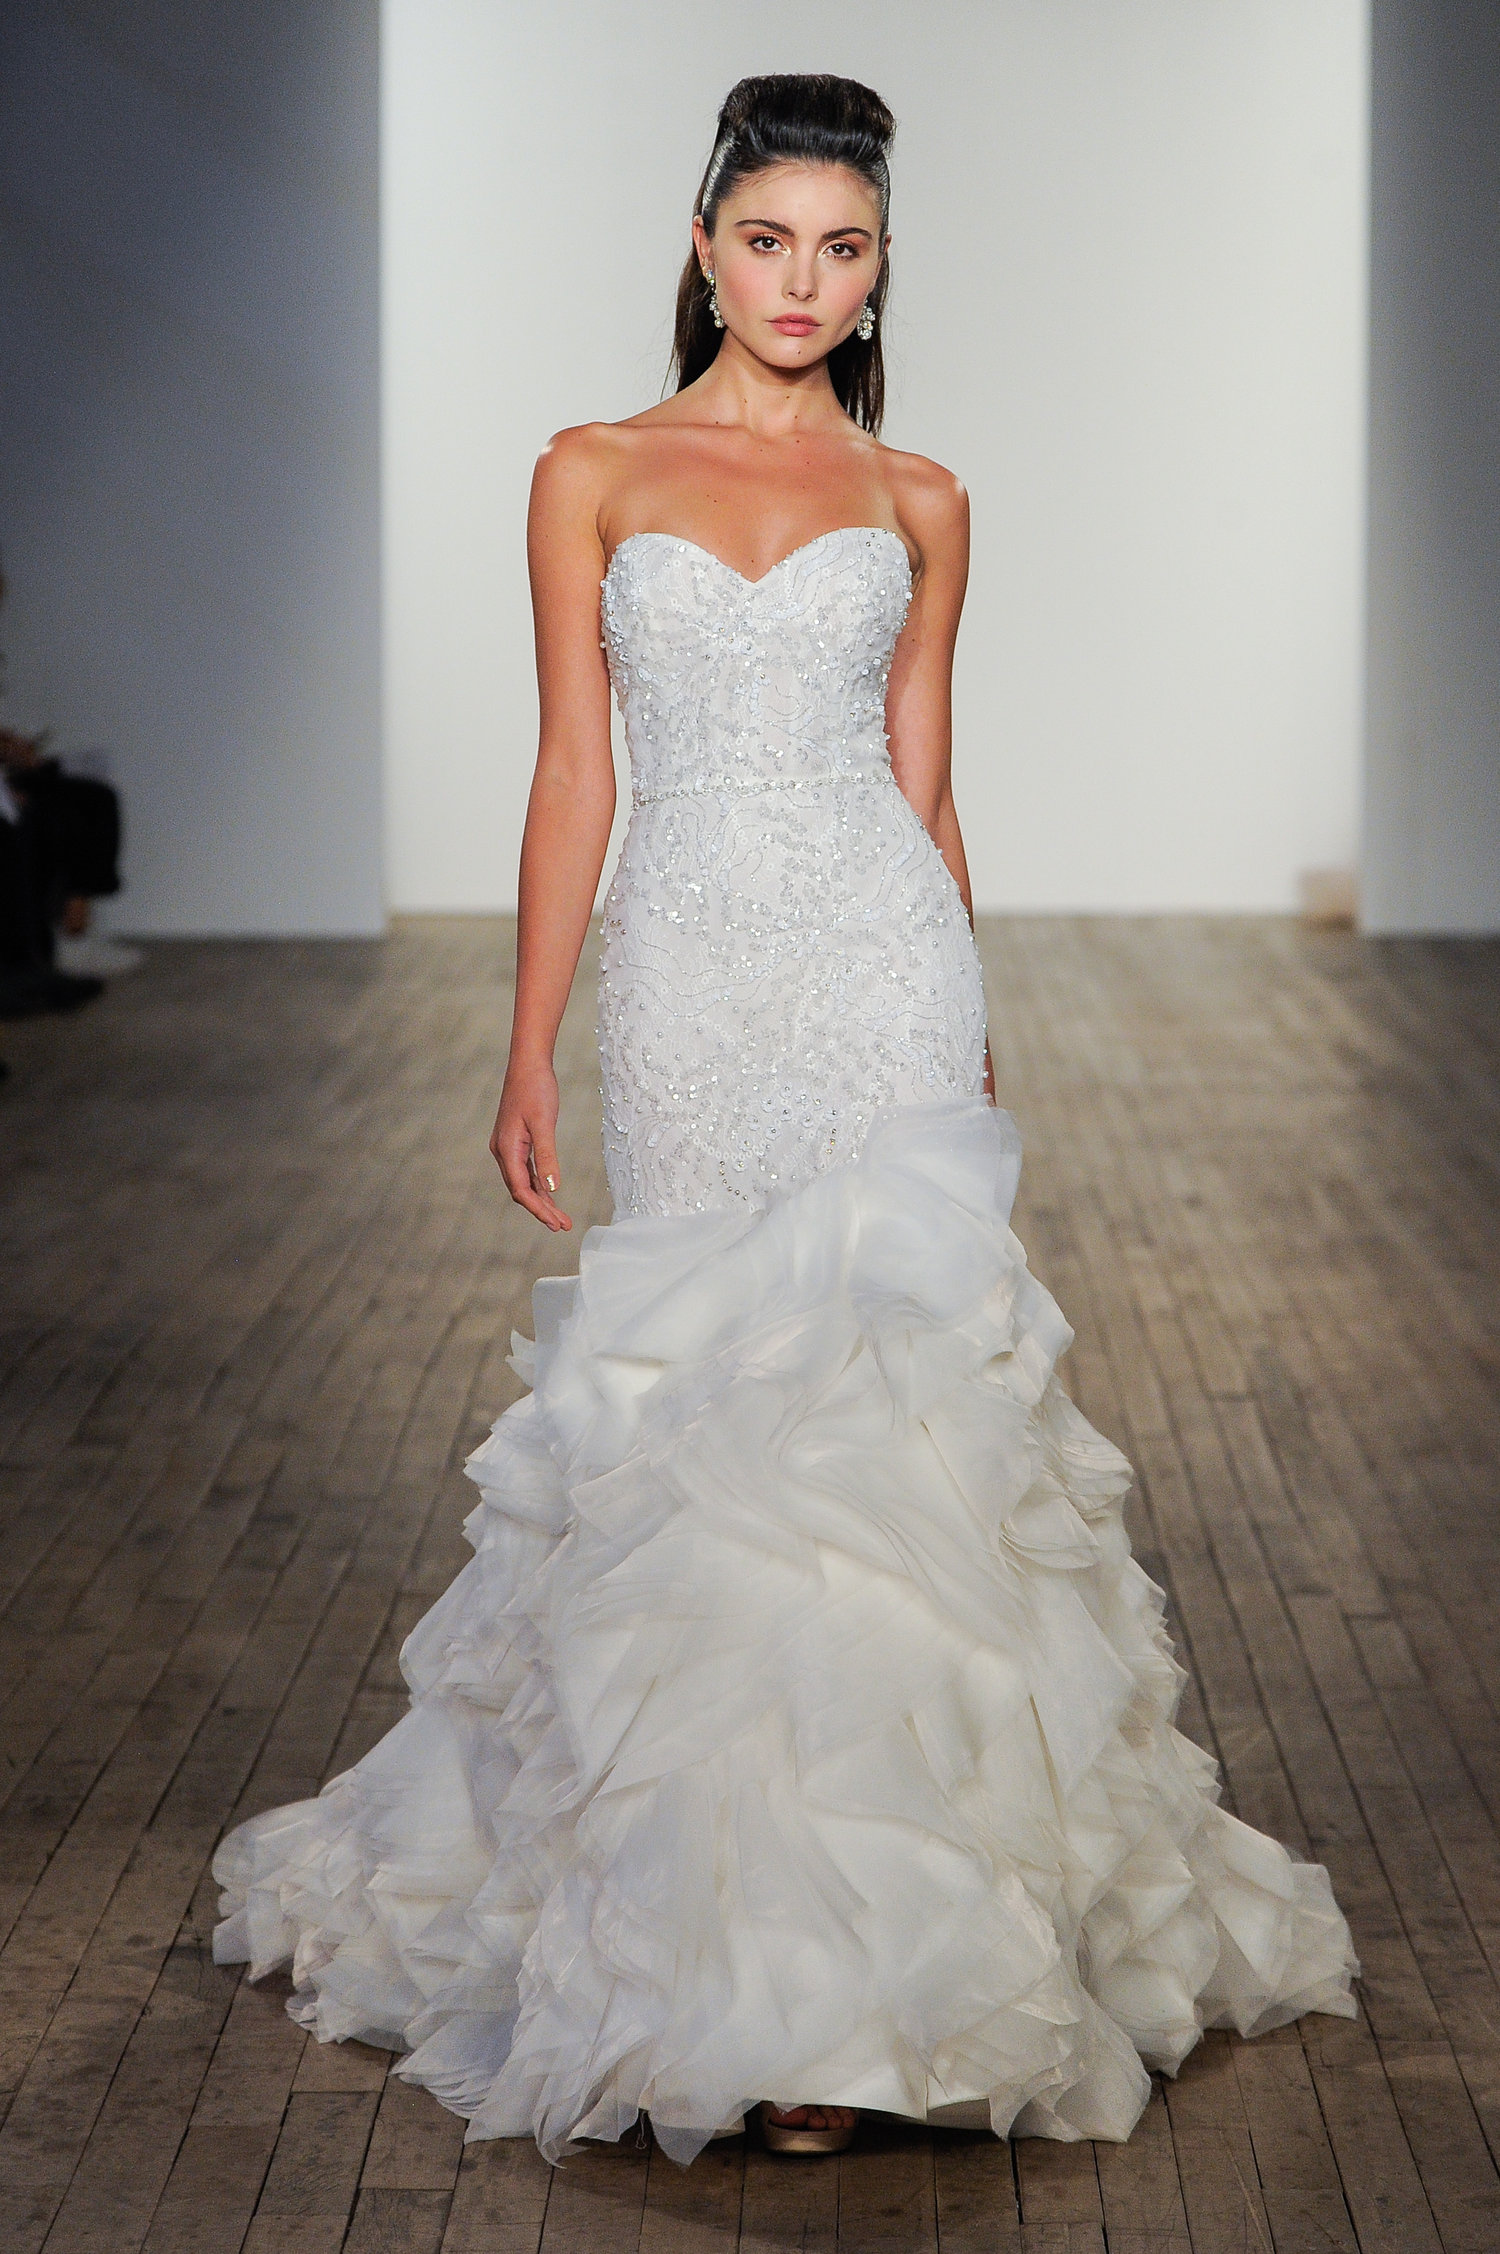 Favorite New Bridal Styles From Nybfw Spring 2020 Jlm Couture